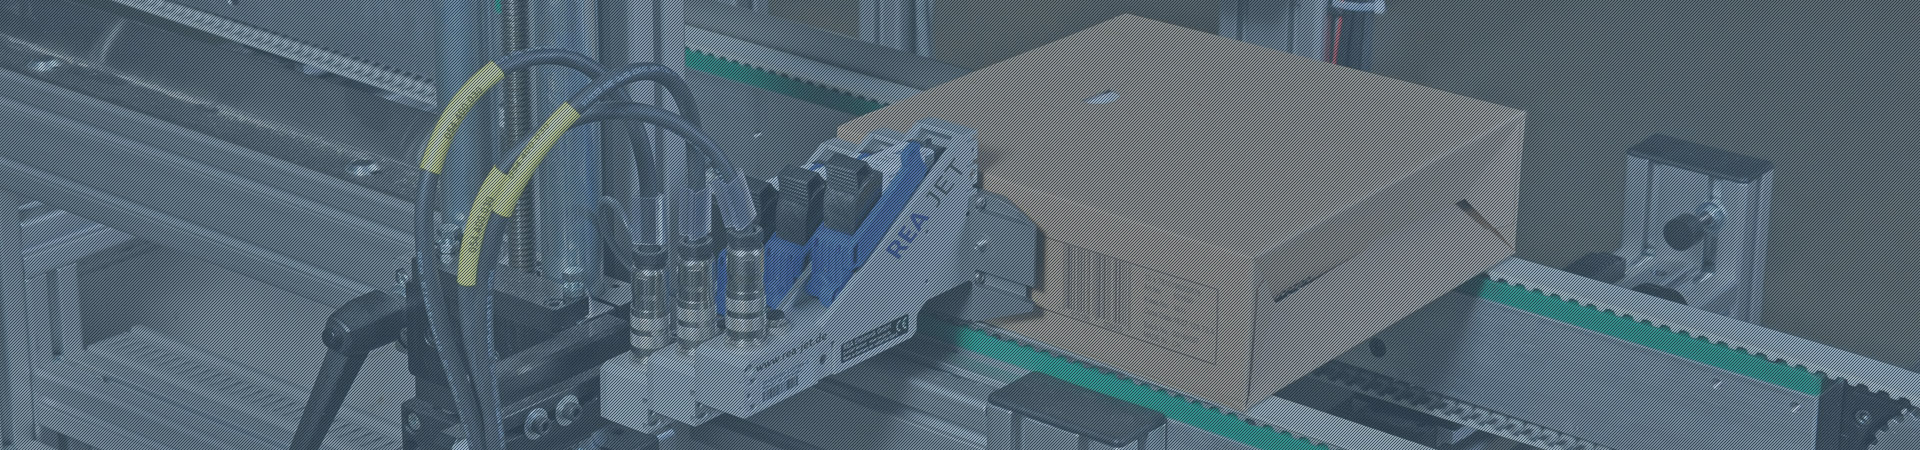 High resolution printer for marking of cardboard boxes with a barcode - Header - REA JET HR